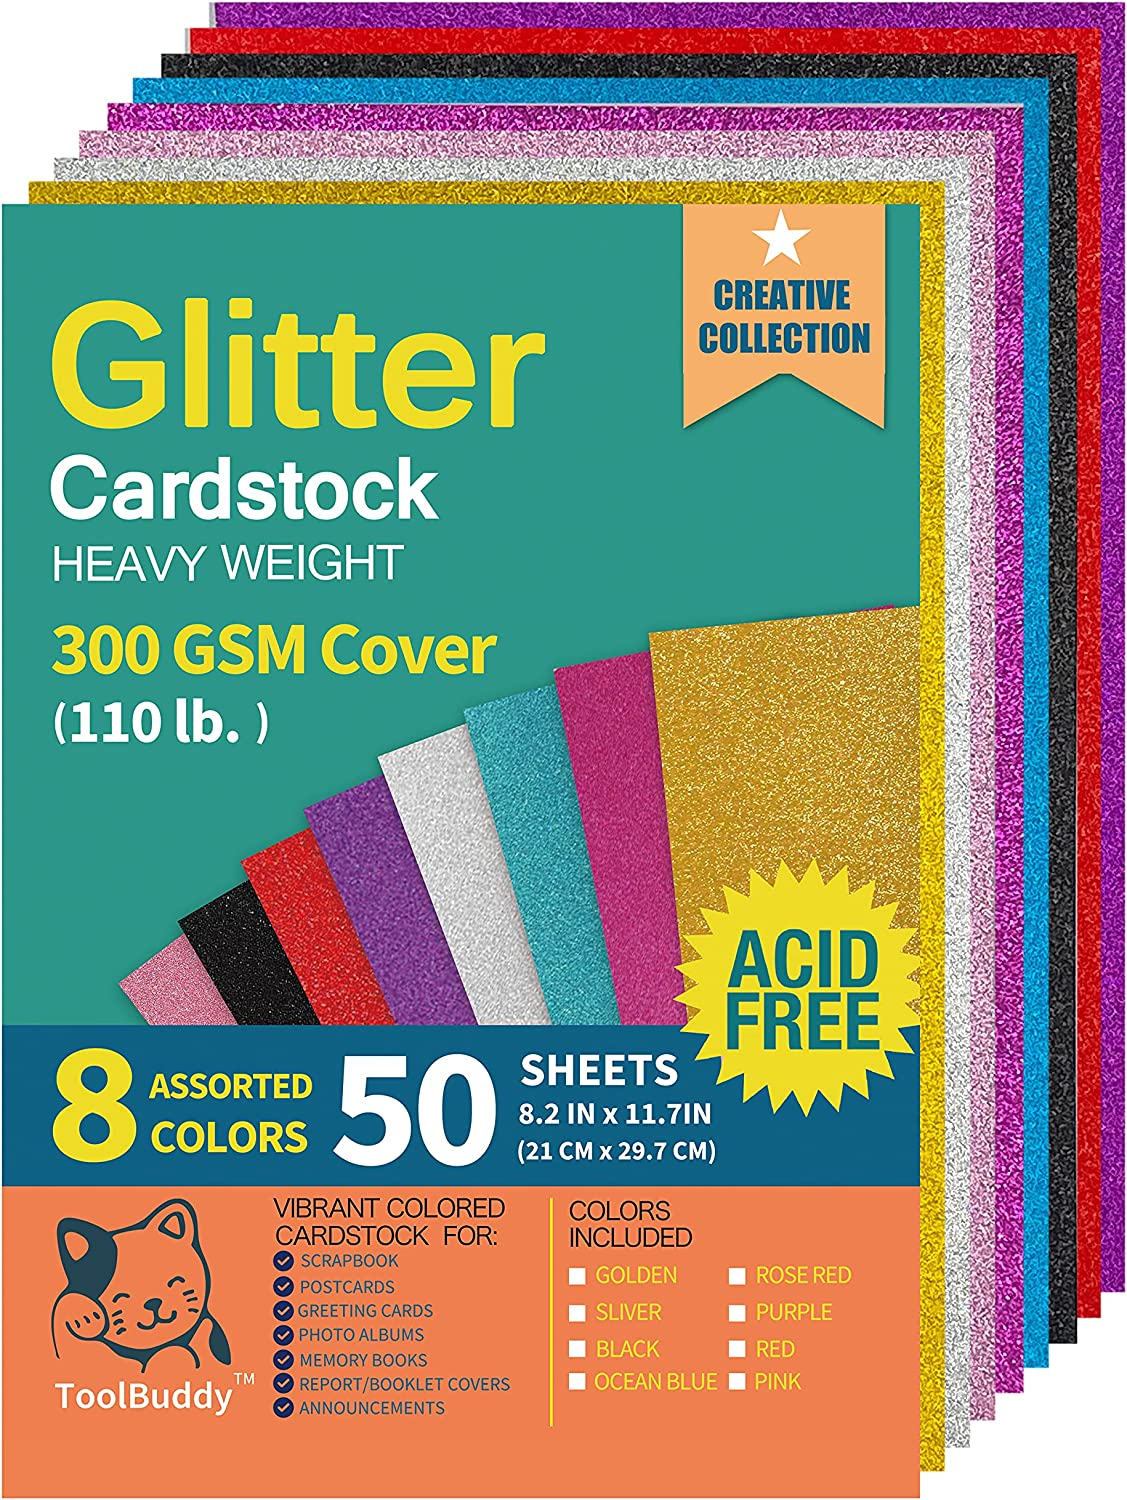 Heavyweight Glitter Cardstock Paper - 110lb. / 300GSM - 50 Sheets A4 Colored Craft Card Stock for Craft Project, DIY, Gift Wrapping, Birthday Party Wedding Decorations, Scrapbooking, 8 Assorted Color : Arts, Crafts & Sewing